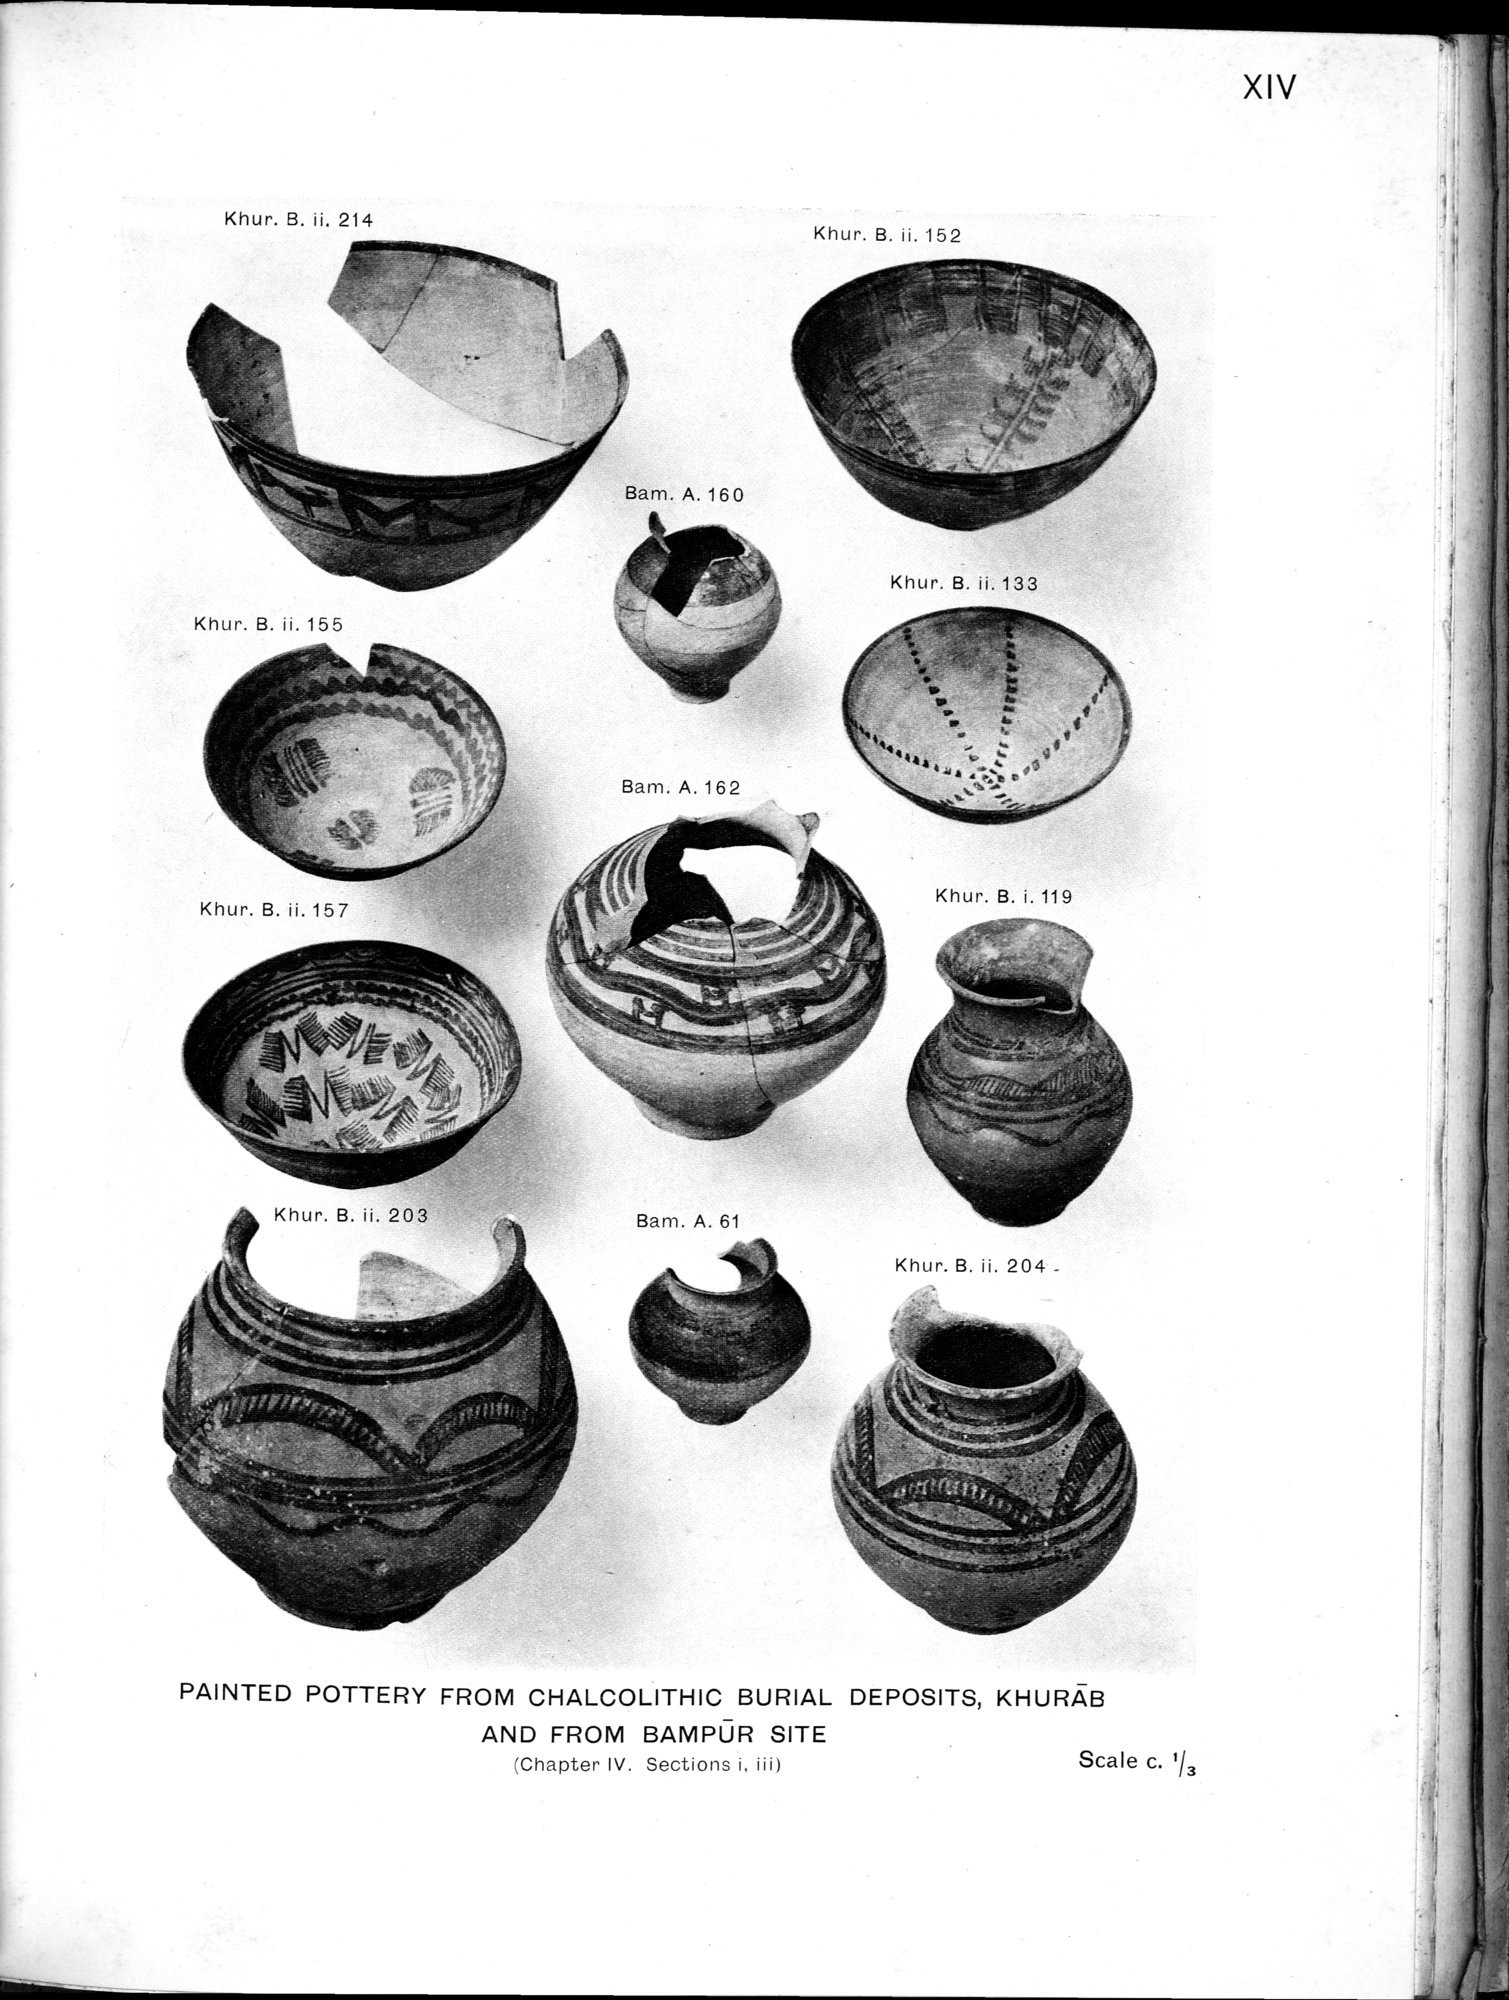 Archaeological Reconnaissances in North-Western India and South-Eastern Īrān : vol.1 / Page 379 (Grayscale High Resolution Image)